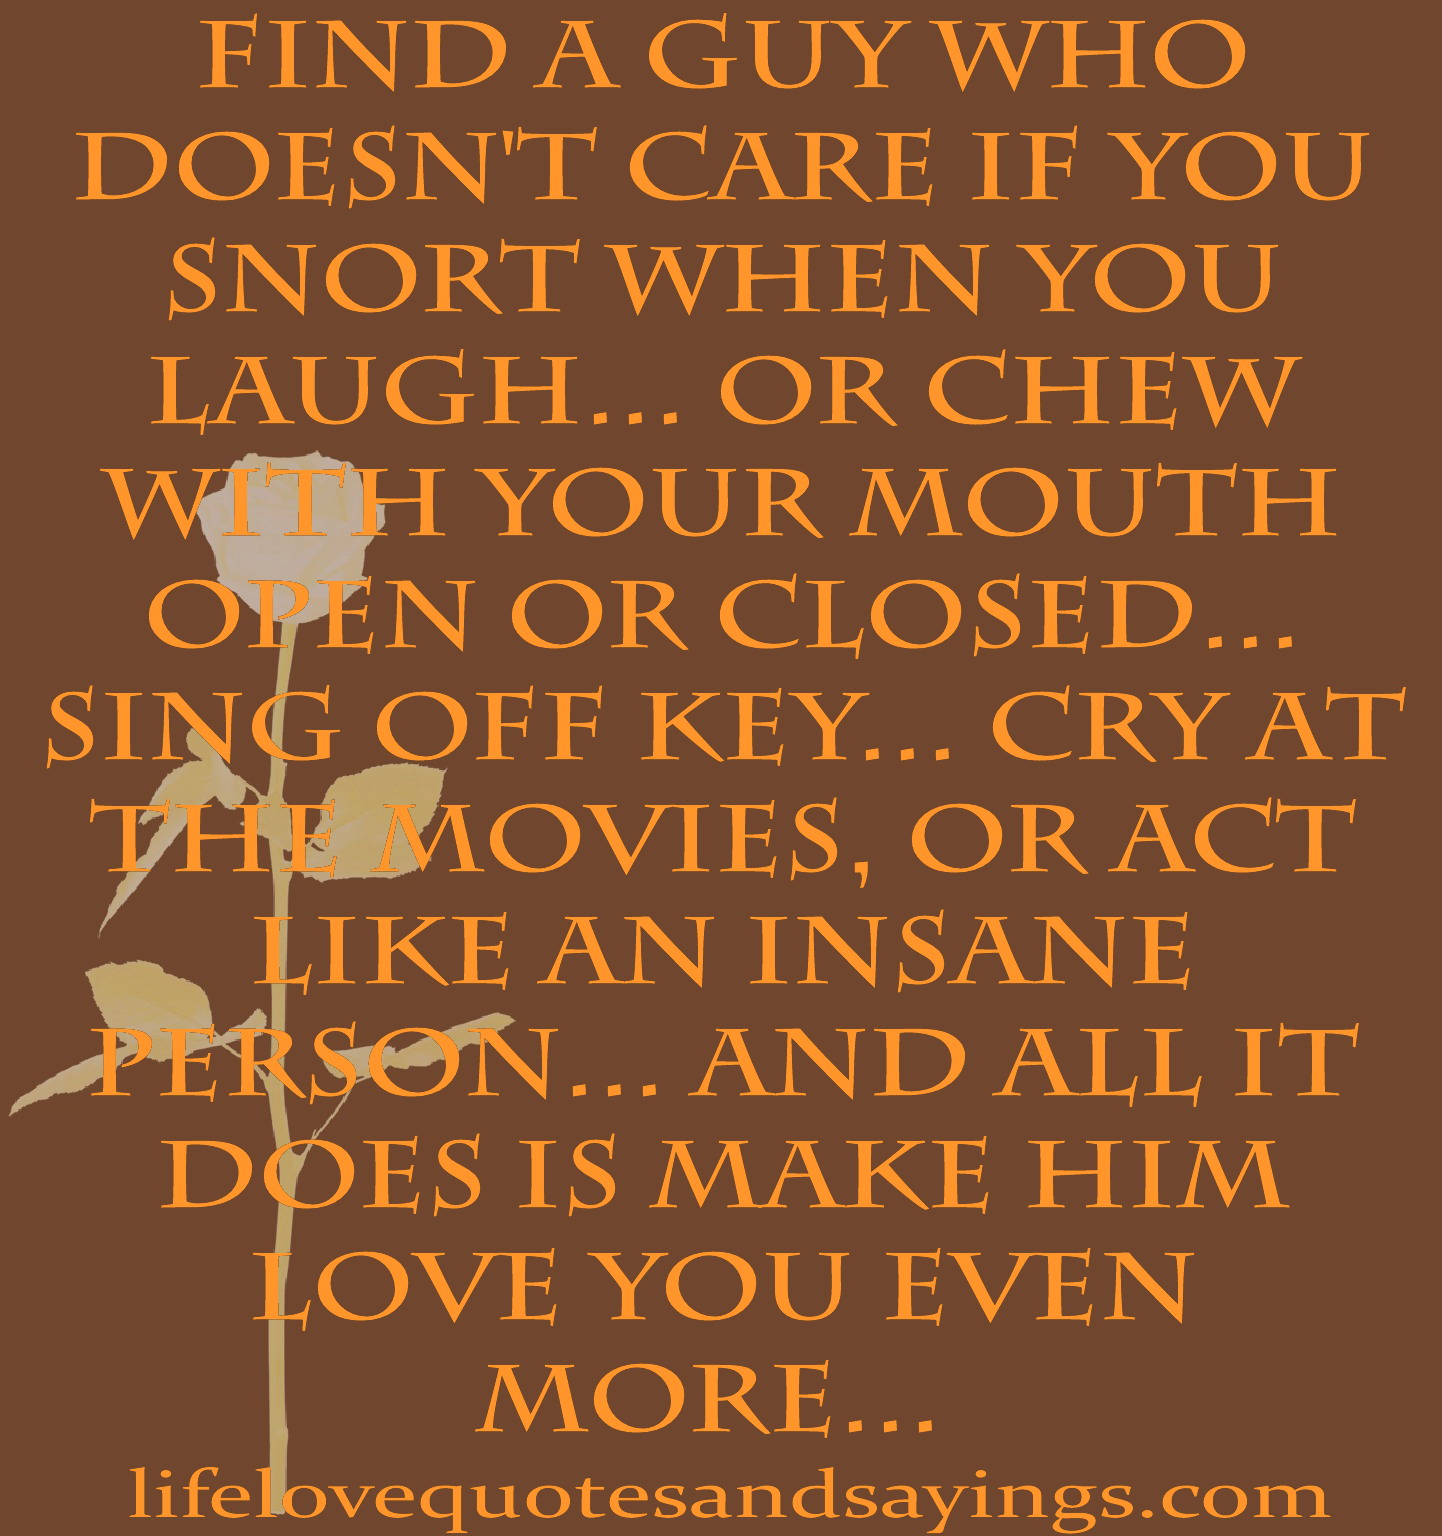 New Love Quotes For Him Quotesgram: Finding Love Quotes And Sayings. QuotesGram